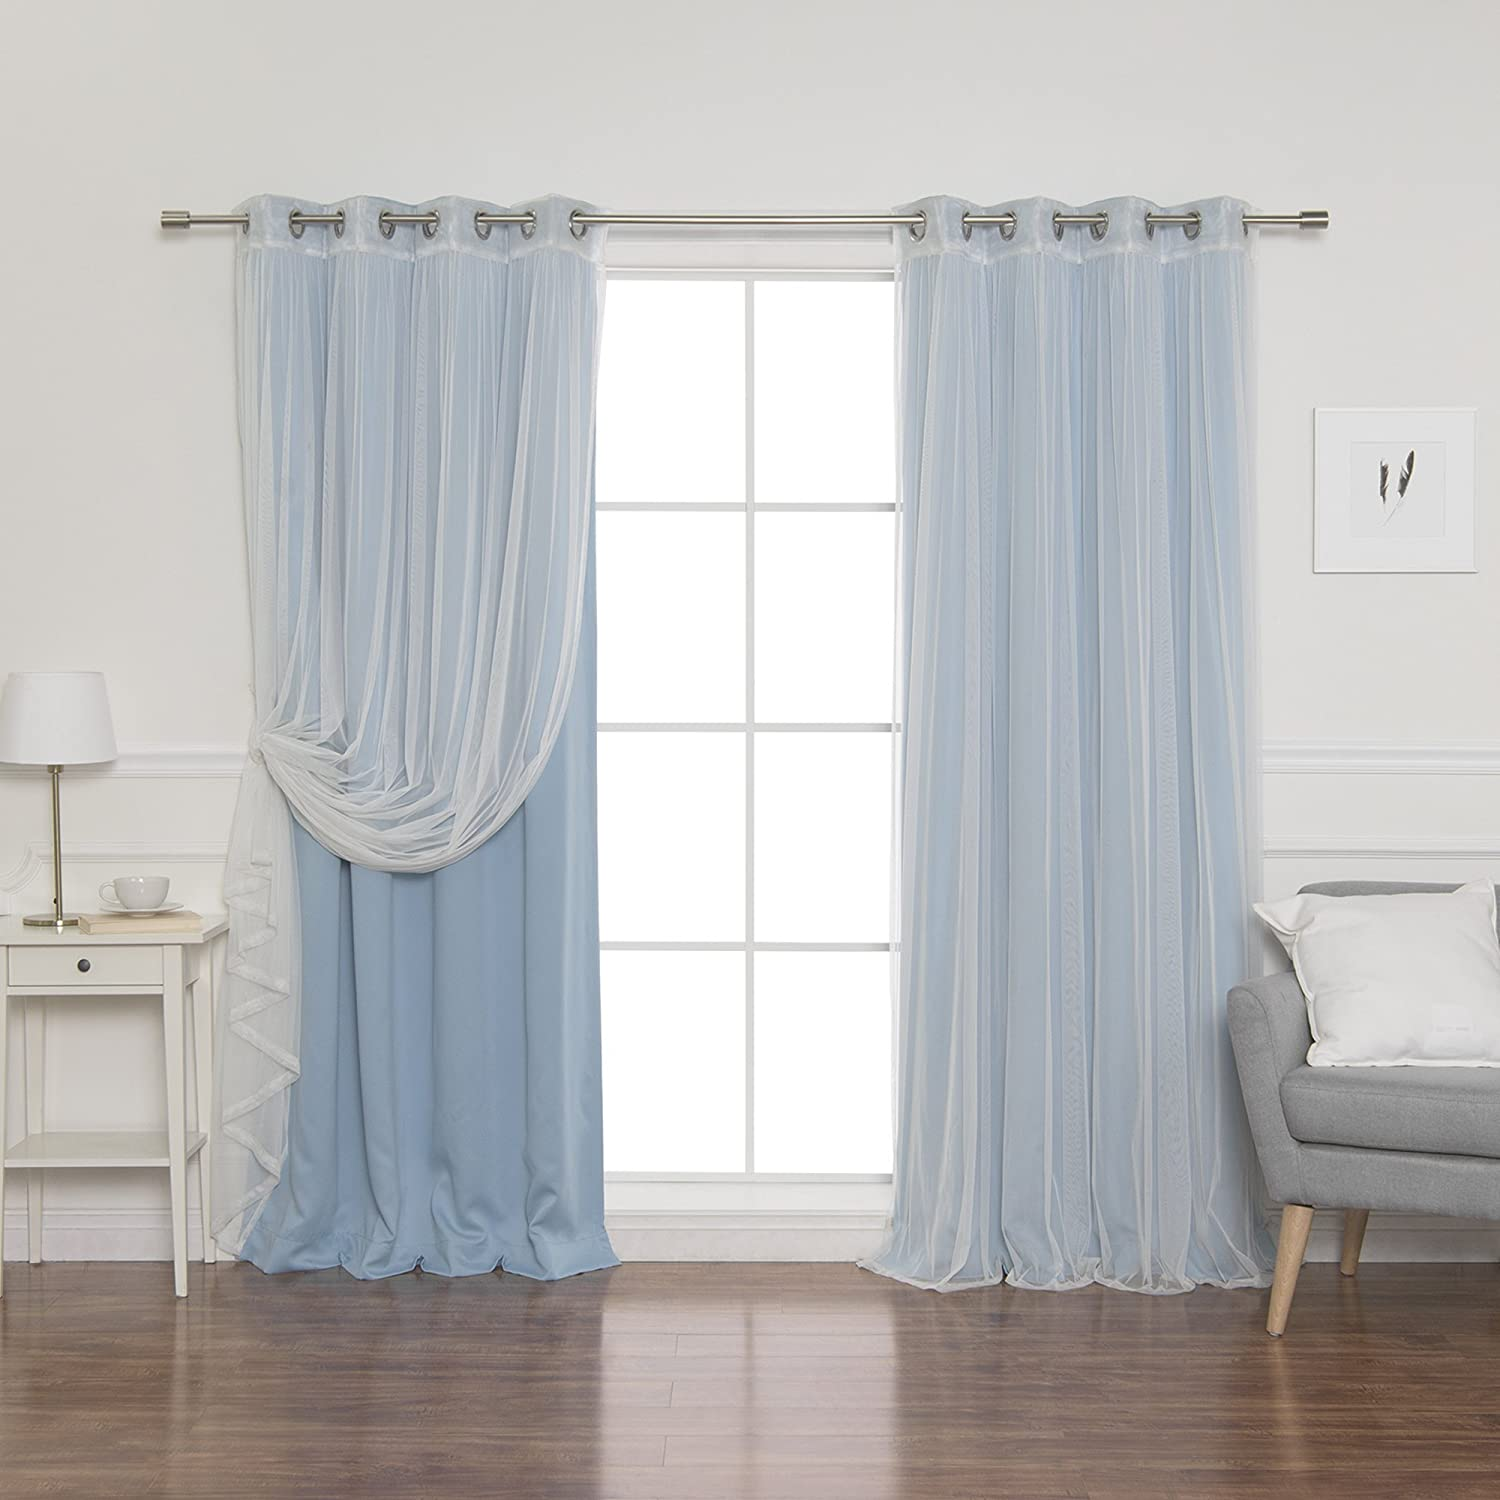 Best Home Fashion uMIXm Mix and Match Tulle Sheer Lace and Blackout 4 Piece Curtain Set – Stainless Steel Nickel Grommet Top – Ocean – 52